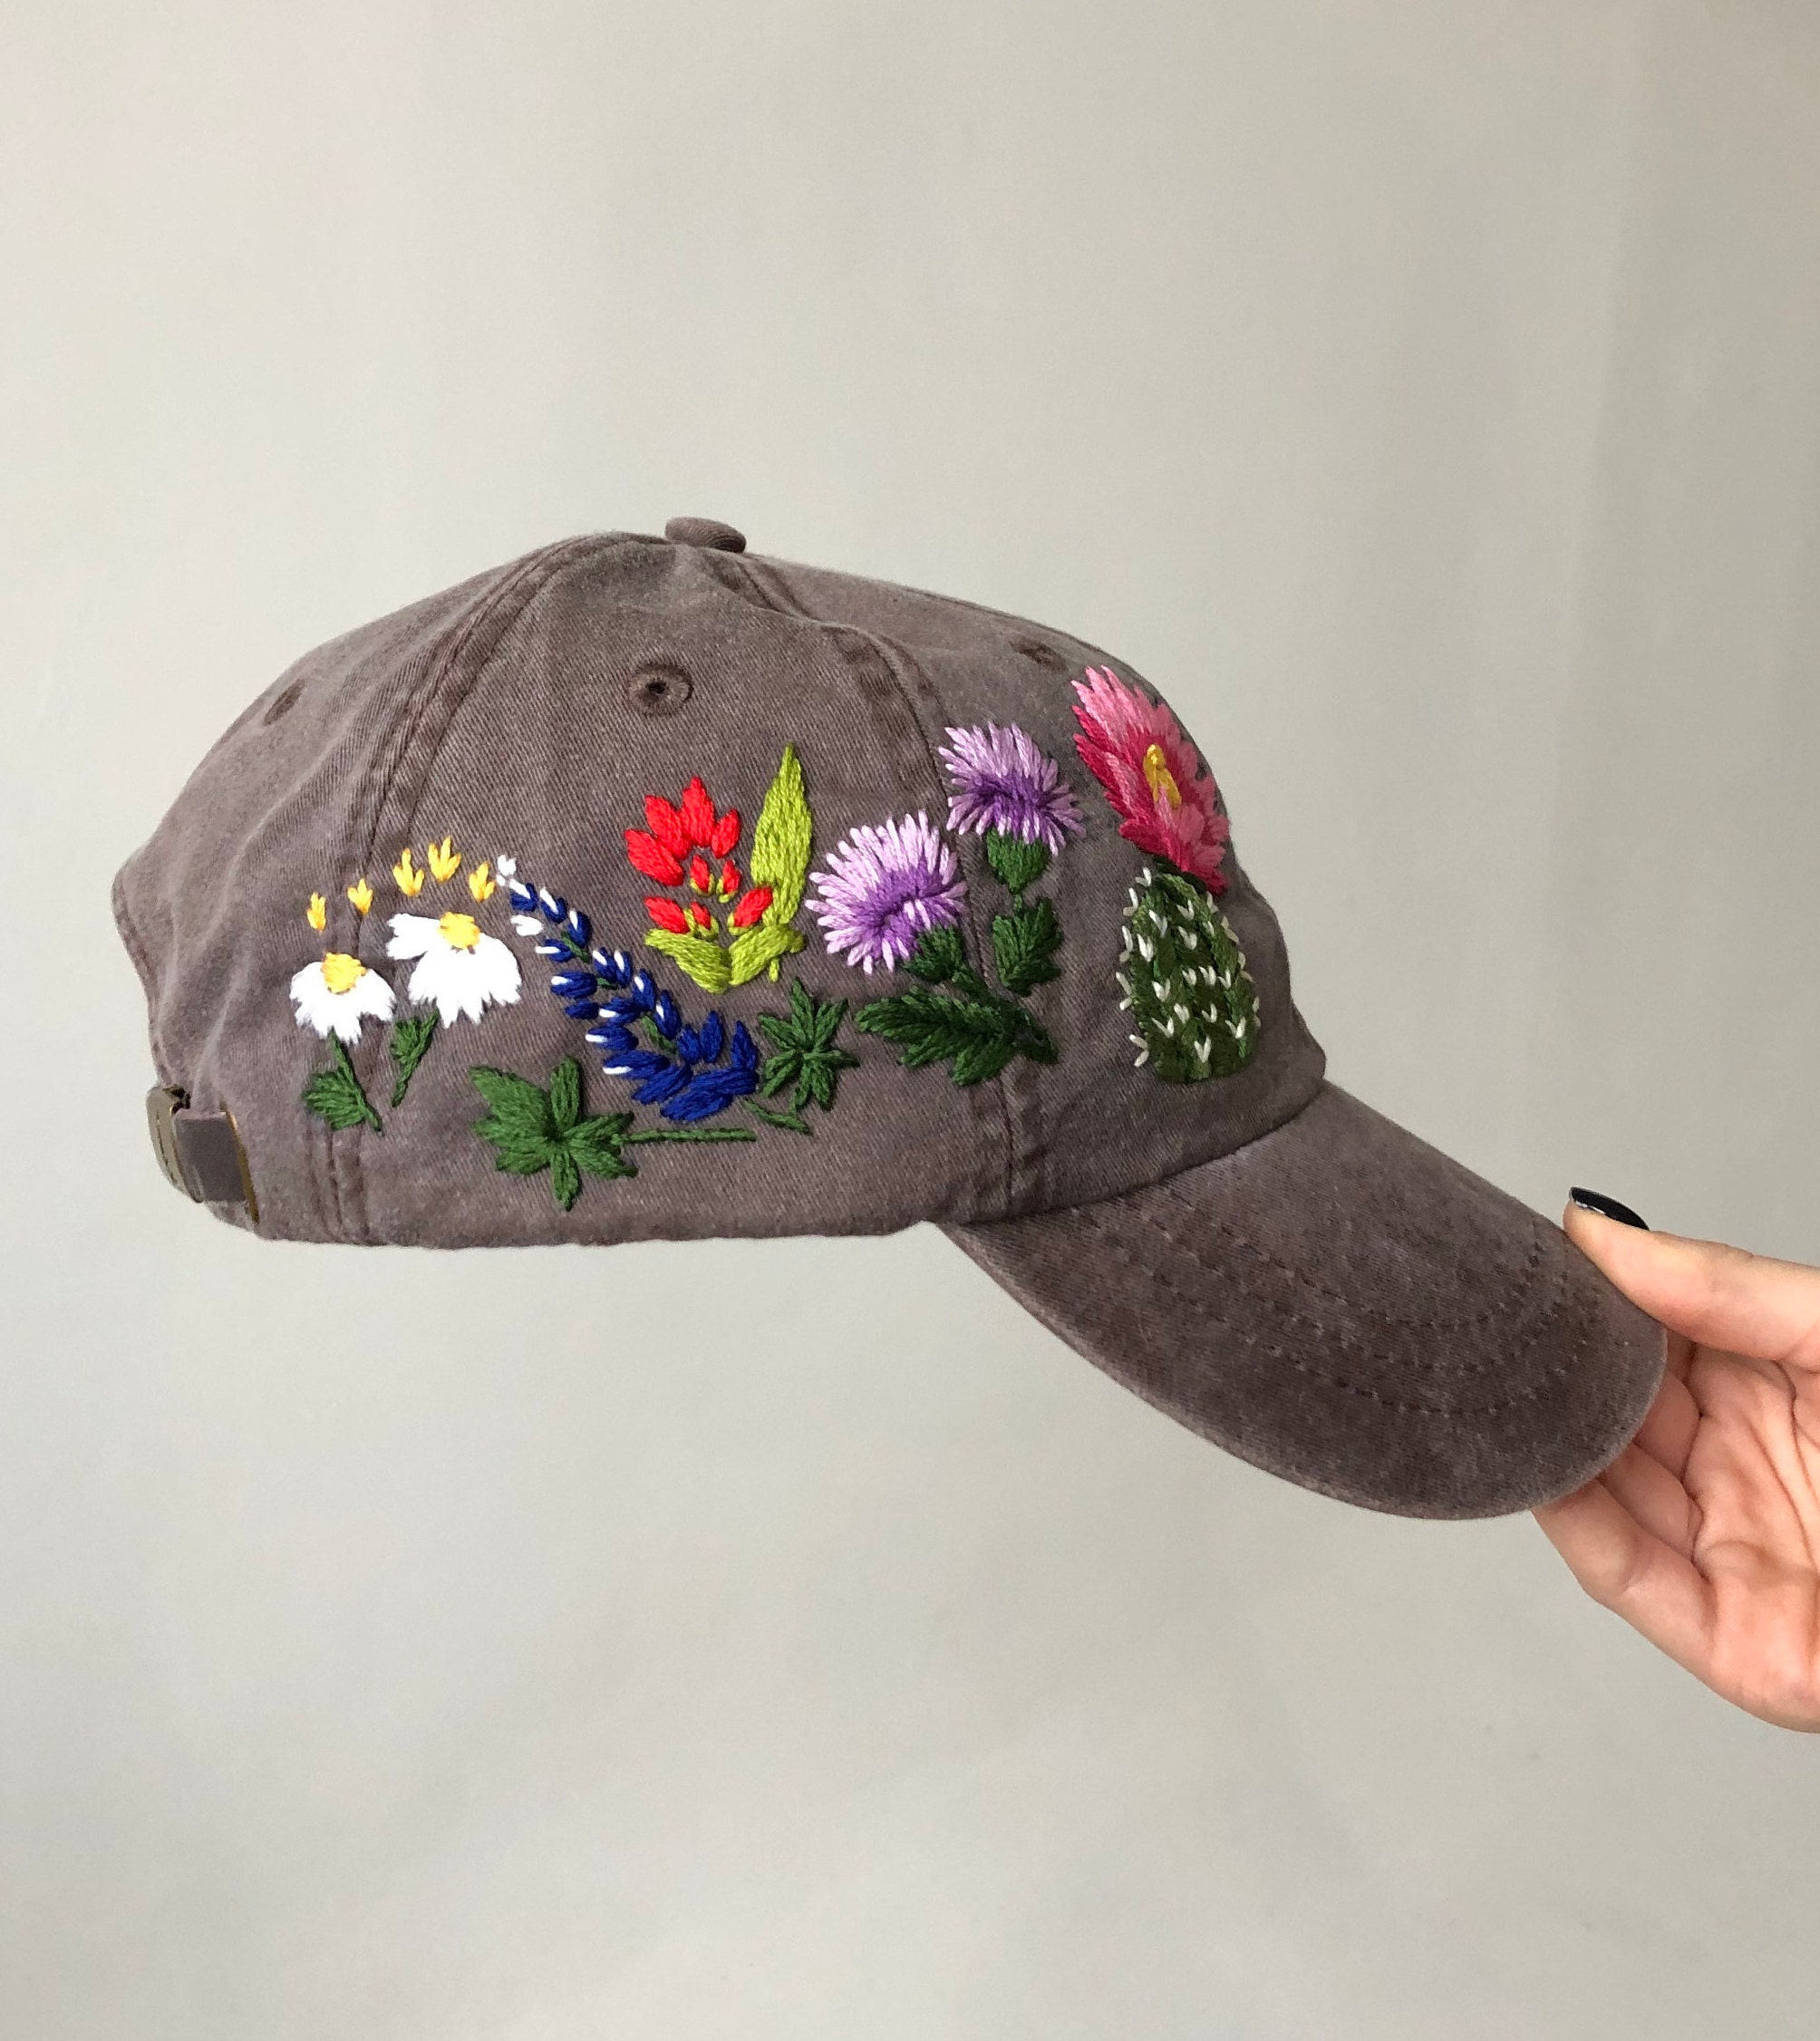 12096d2c4976a7 Hand embroidered hat Embroidered flower hat Embroidery hat | Etsy